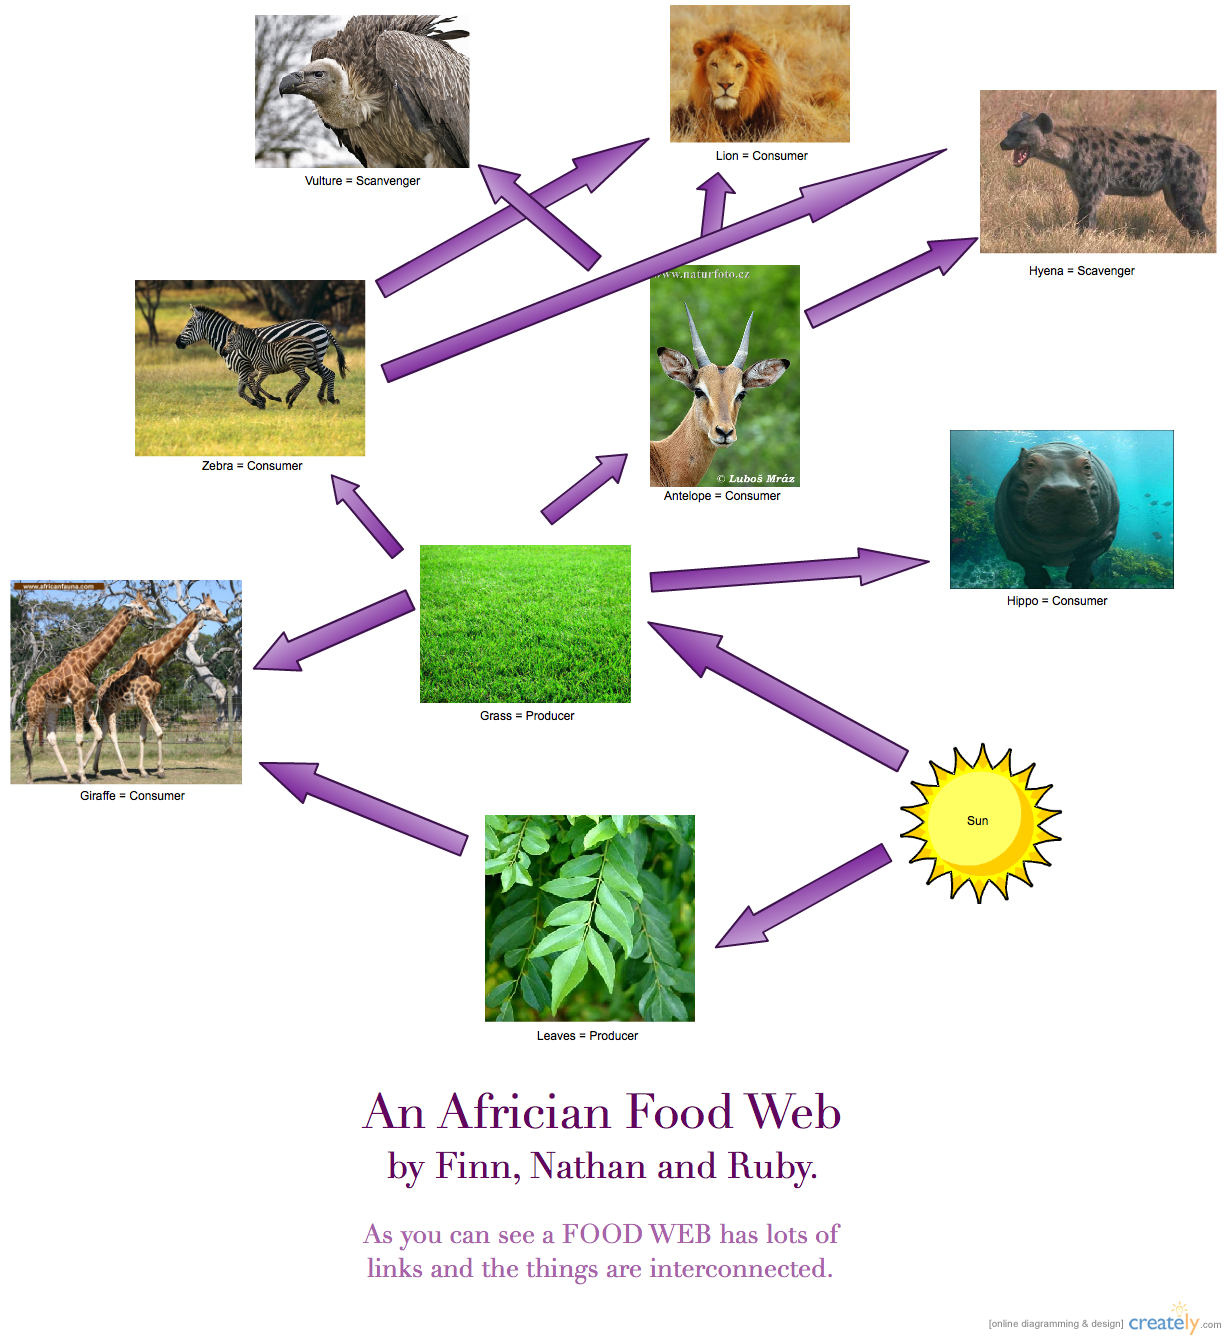 Learning Hub 3 2013 @ Stonefields School: Food Chains And